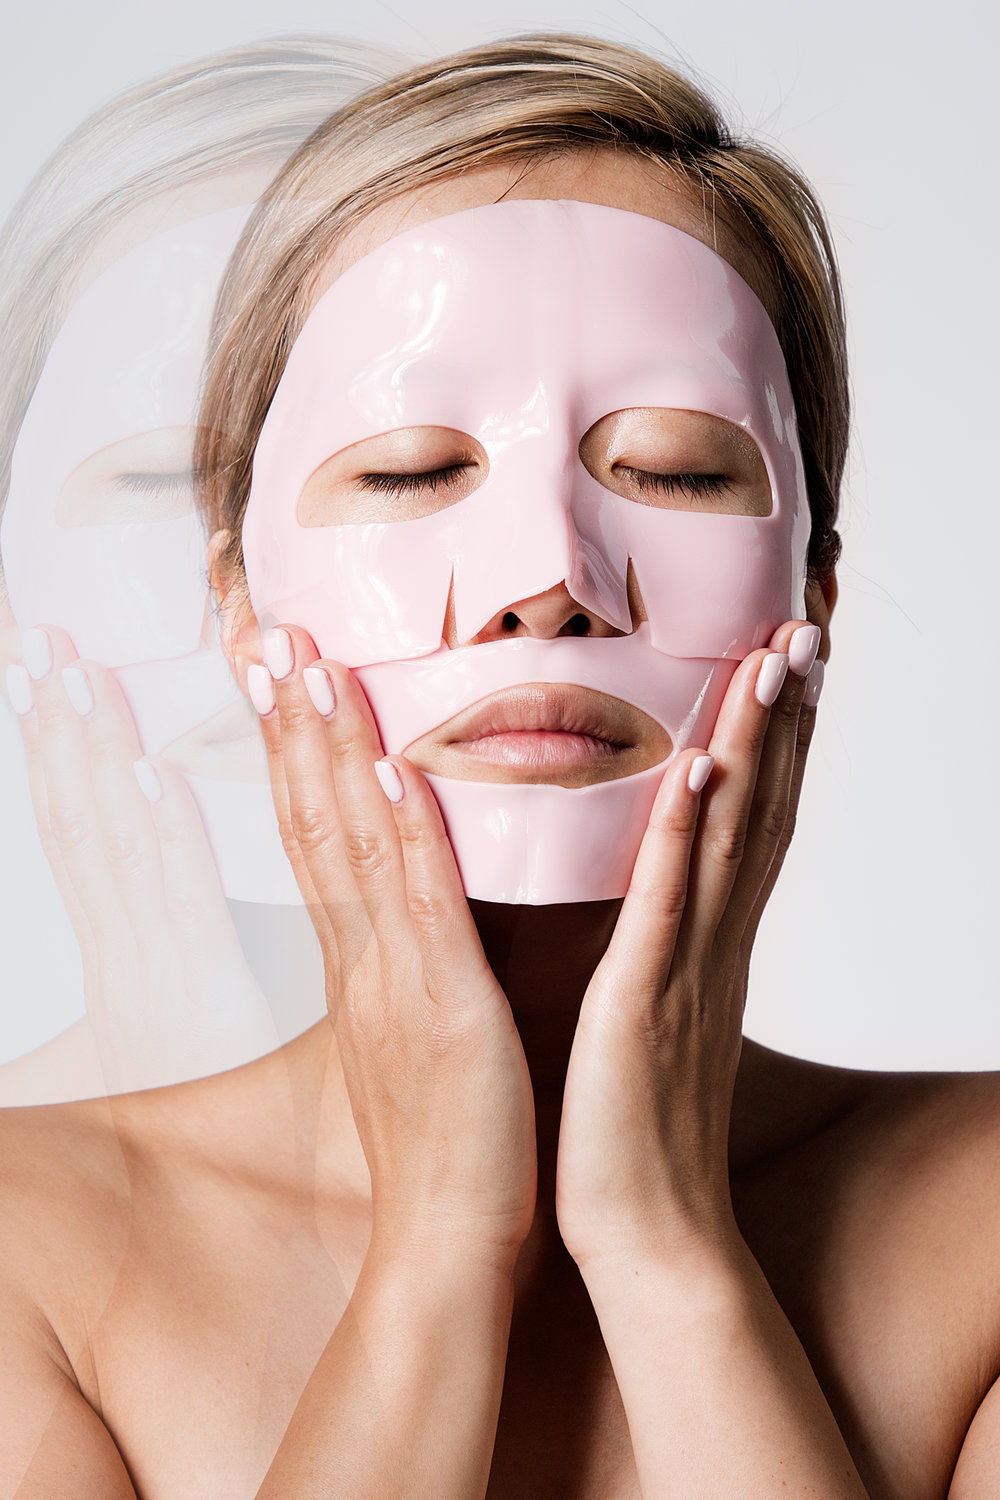 Silicone face mask: types, uses and features 93